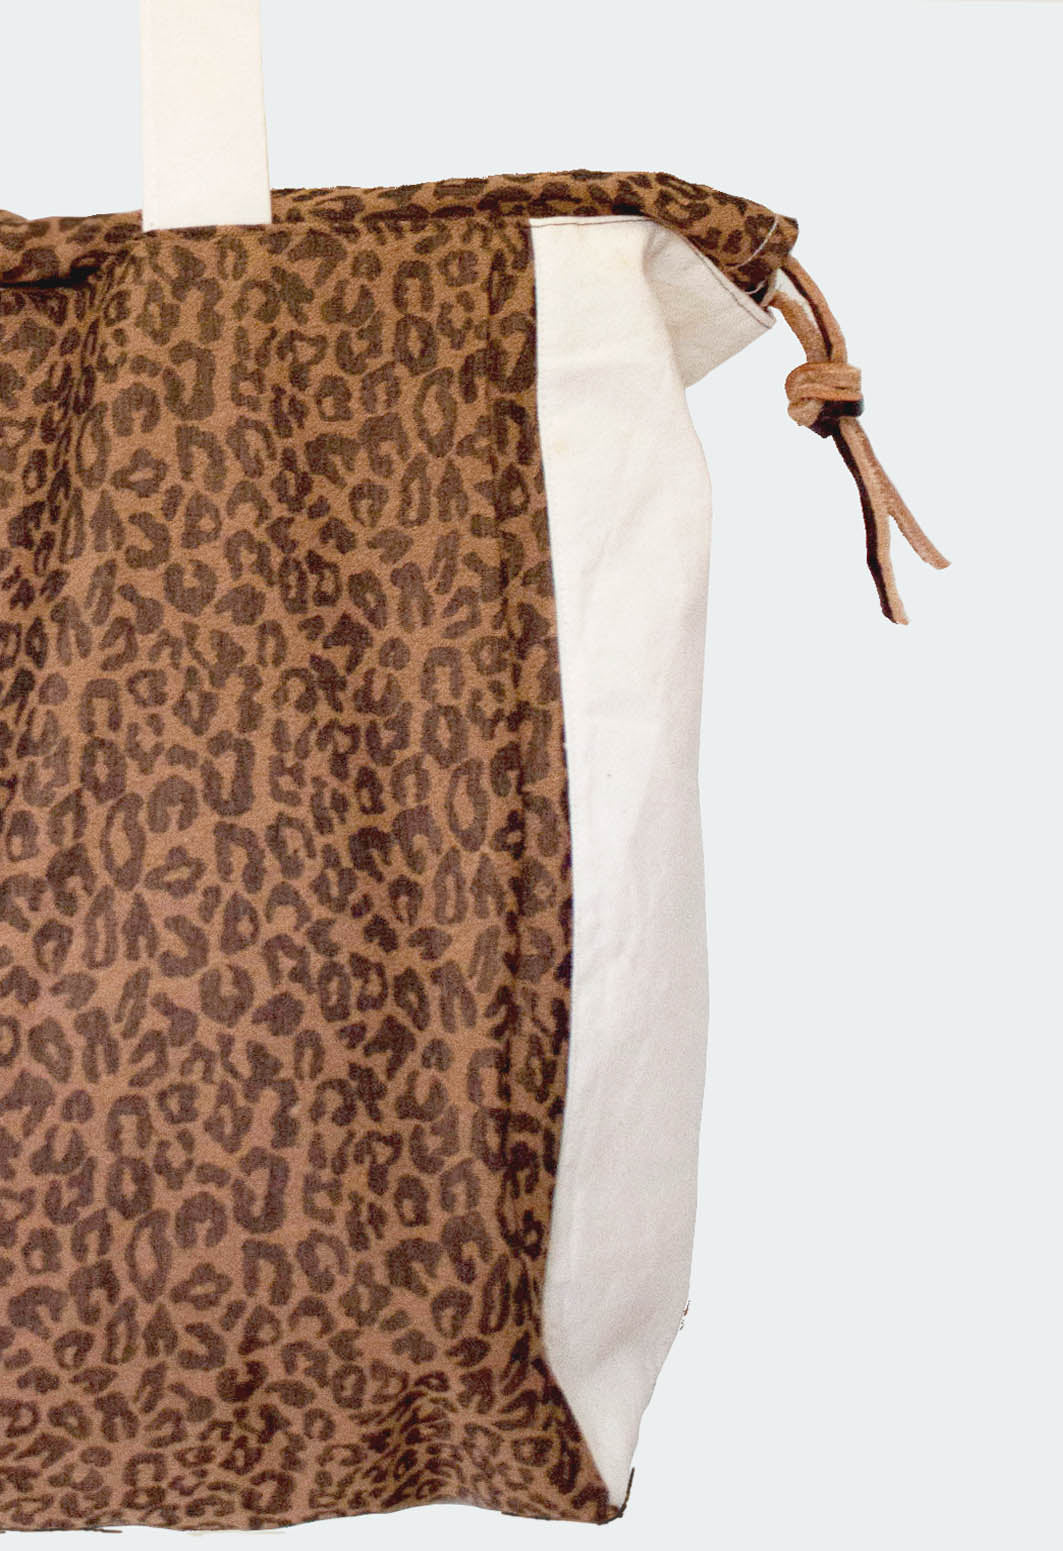 Shopping Bag NSB Leopard - NuriaSerraBarcelona